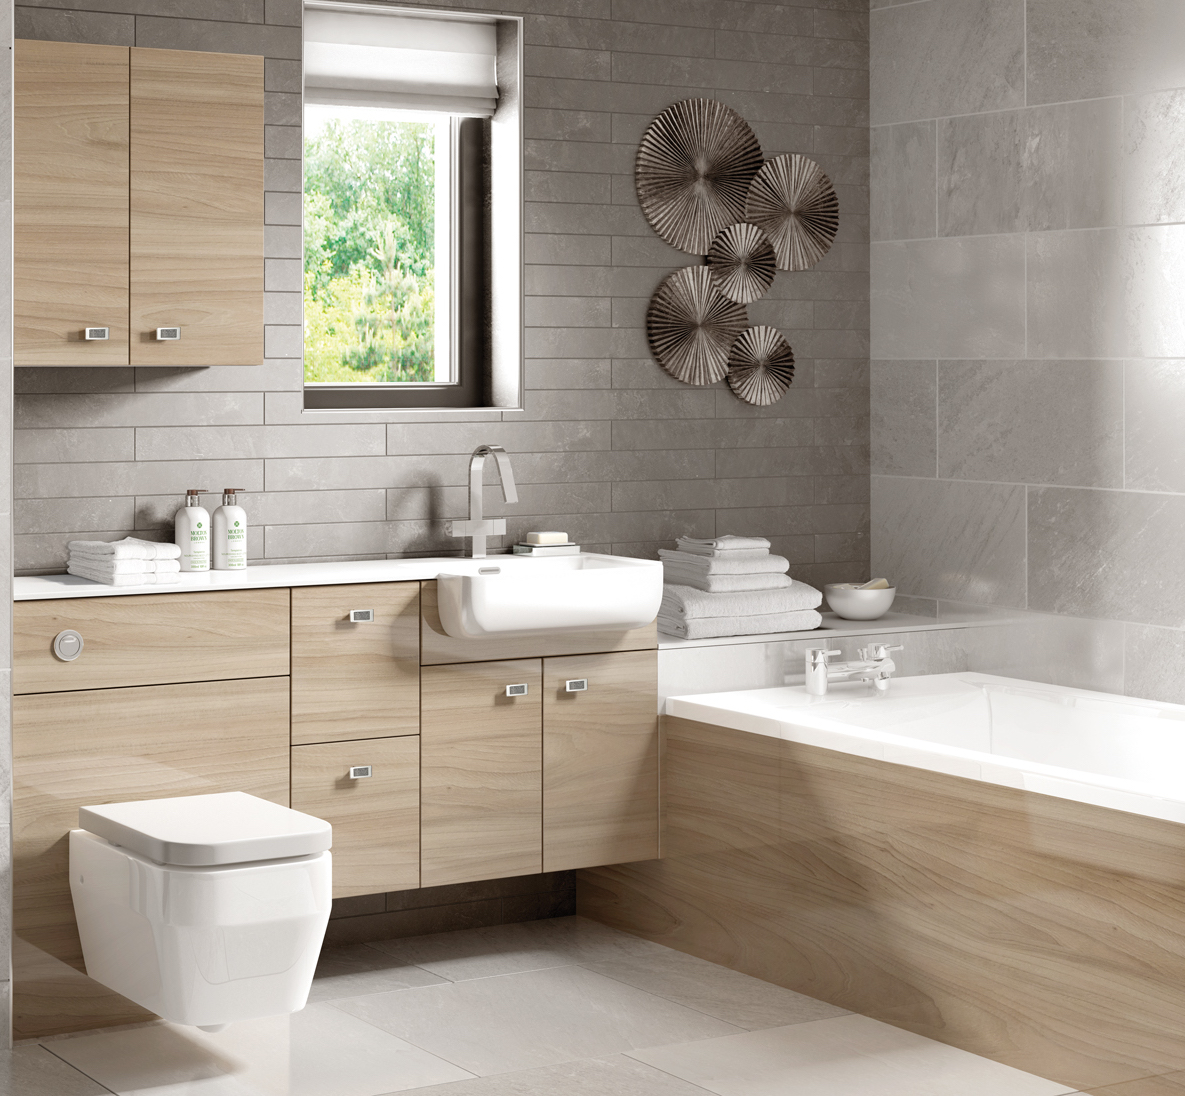 Bathroom showrooms shrewsbury - Bathroom Furniture Showrooms In Shrewsbury And Telford Shropshire Glossbathroomfurniture